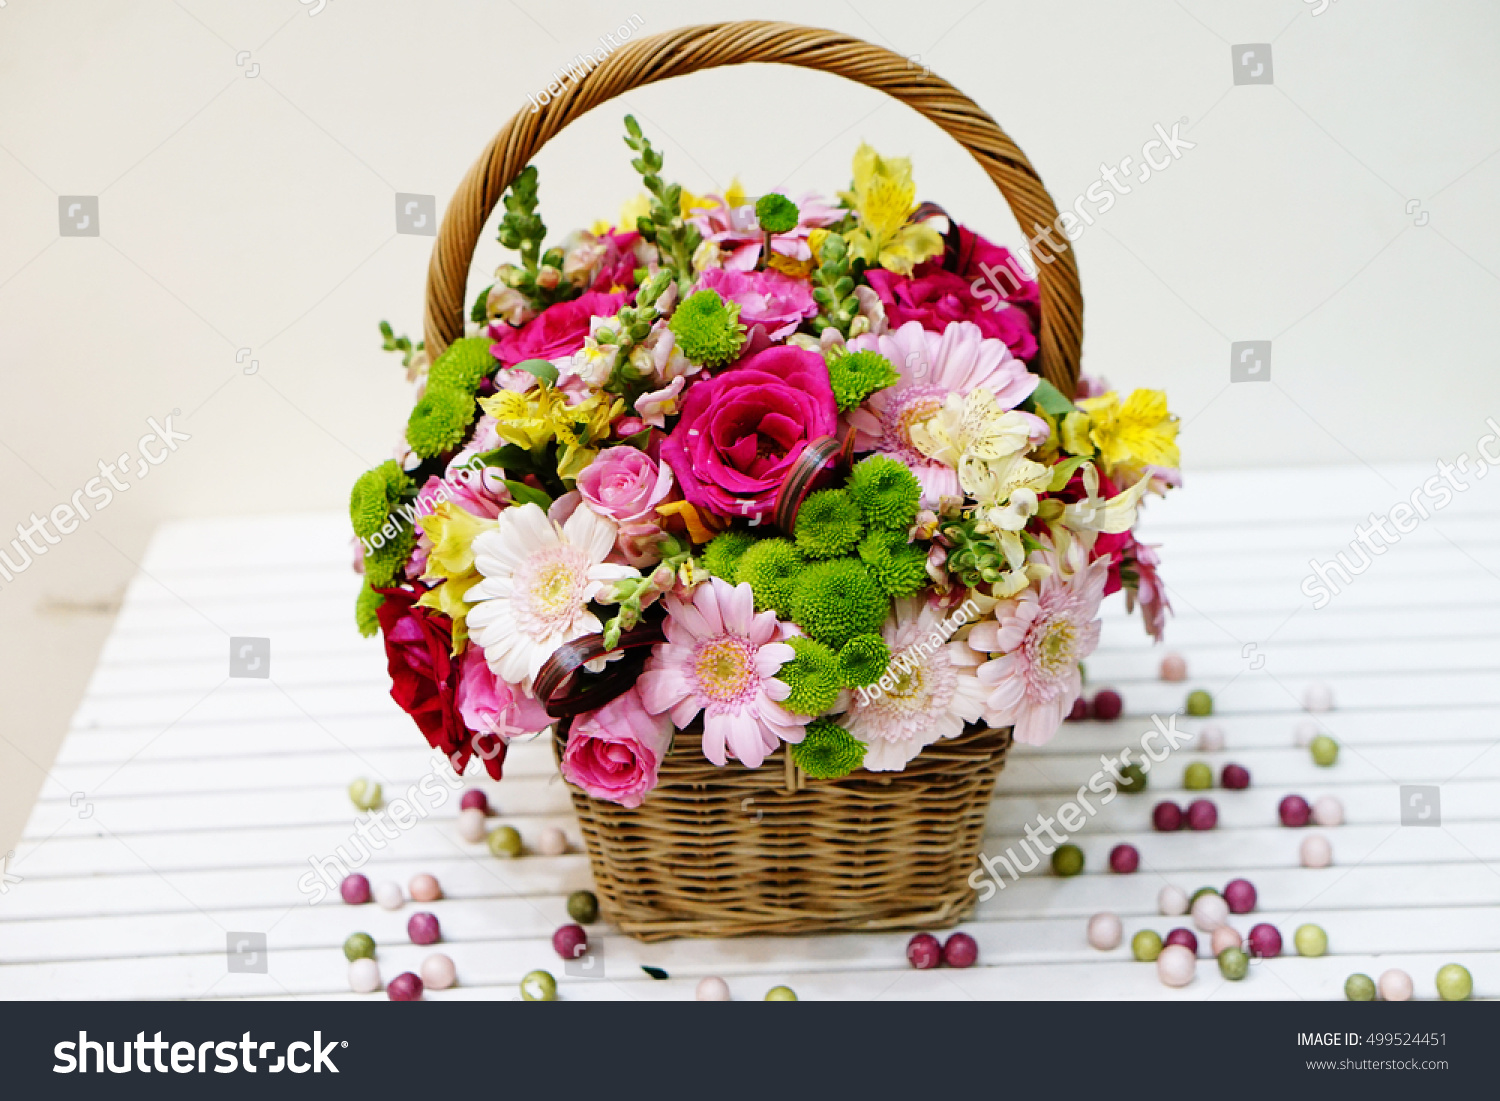 A Bunch Of Flowers Pink Roses Daisy Flower Design Flower